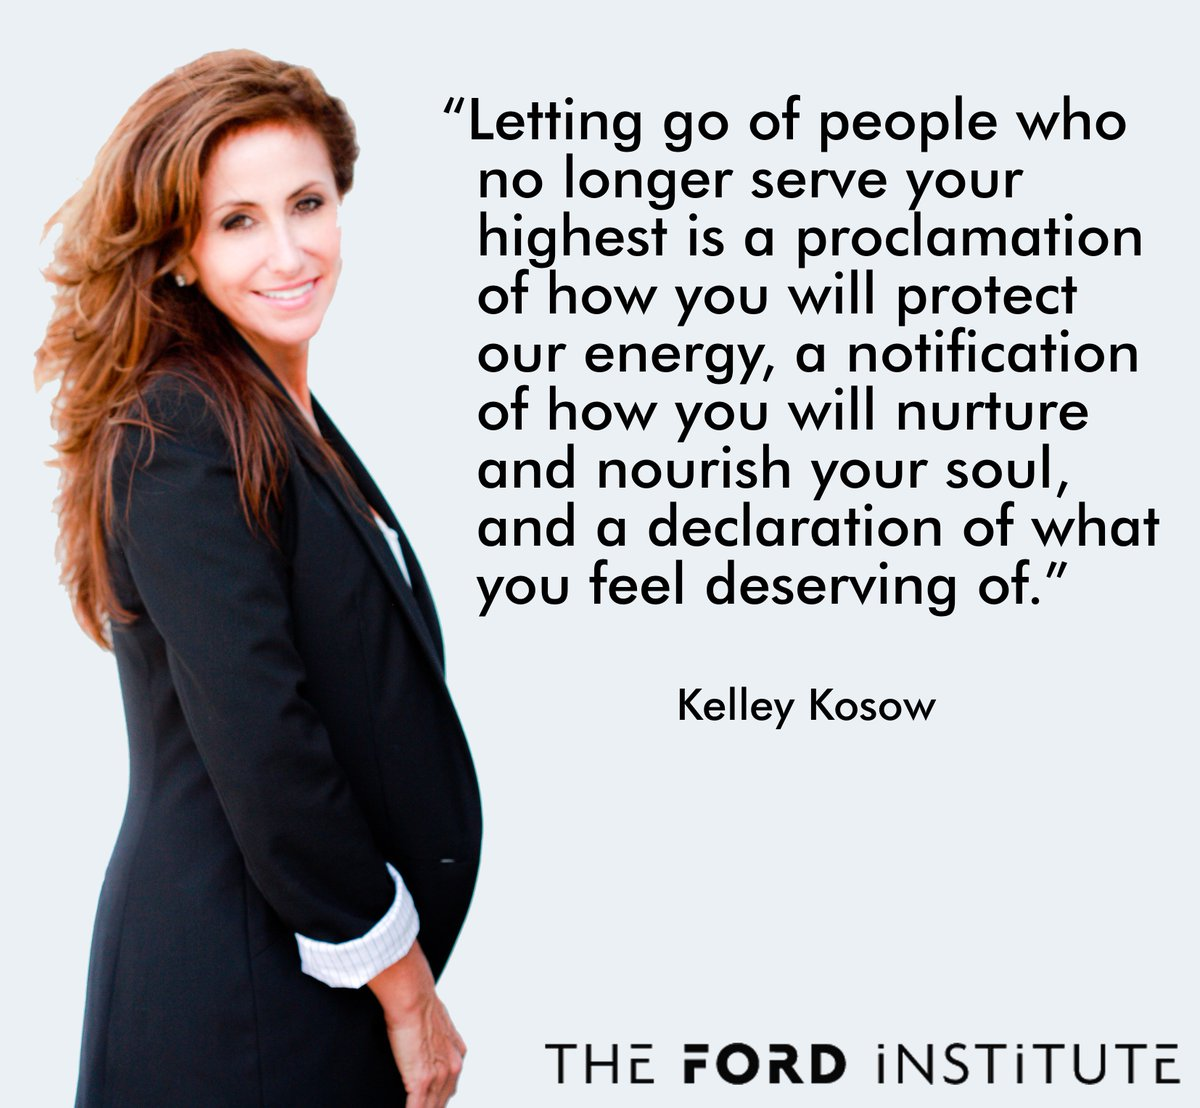 """Letting go of people who no longer serve your highest is a proclamation..."" Kelley Kosow #TheFordInstitute https://t.co/ryFlMbiwBH"